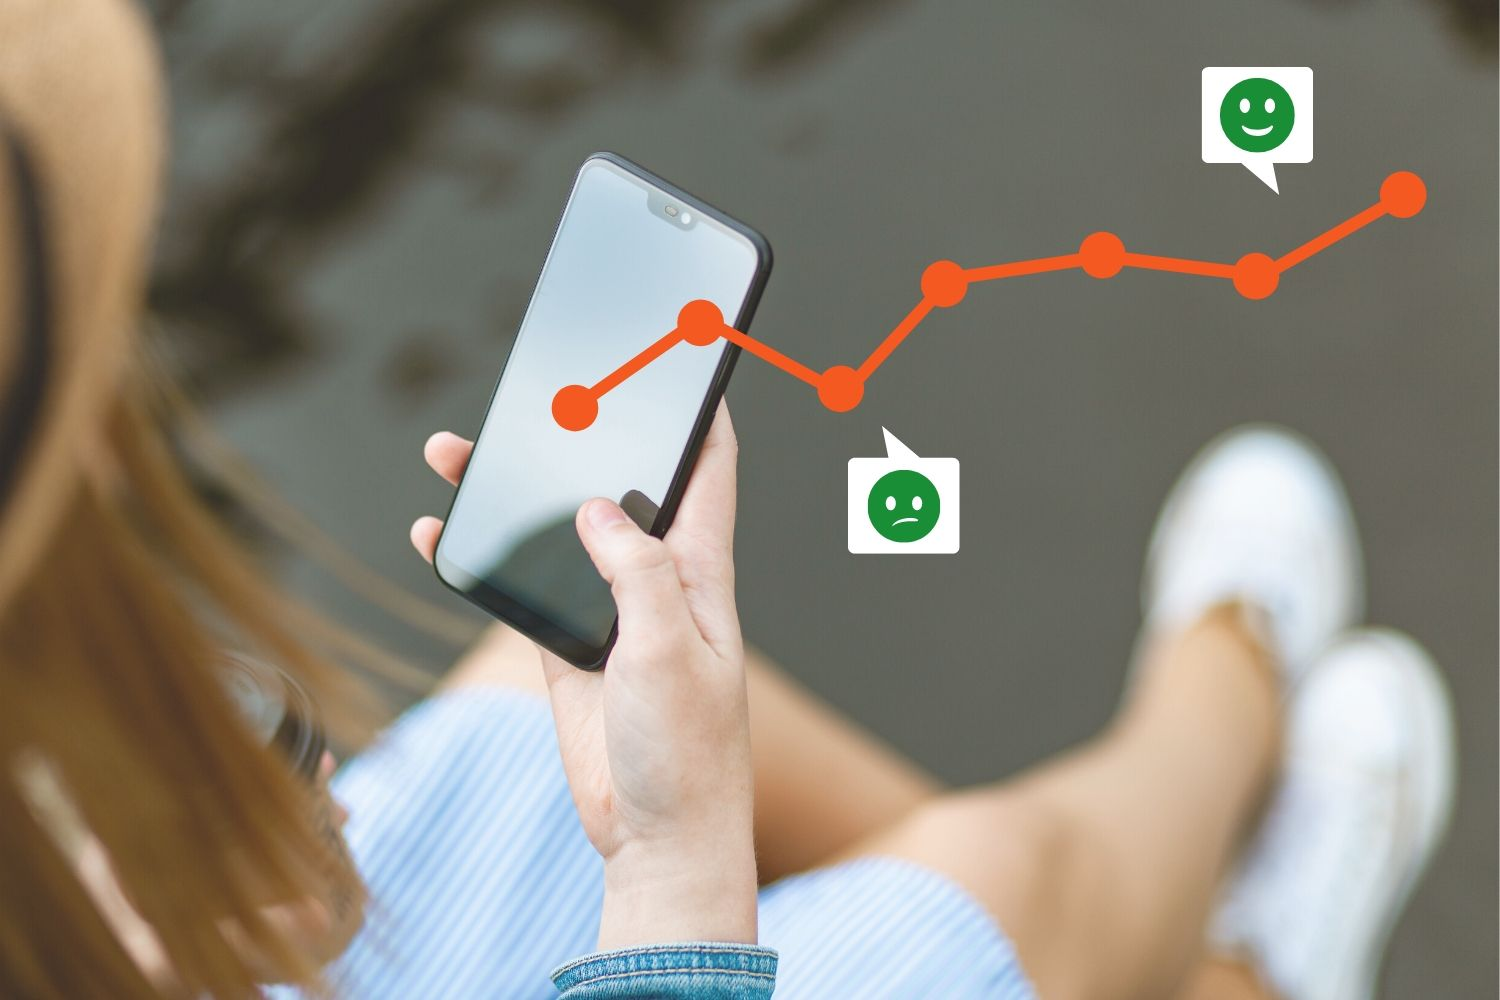 Excellent.org focuses on the customer experience and what helps your customers have a positive experience. The picture shows a woman on a smartphone and a graph that illustrates your customer experience